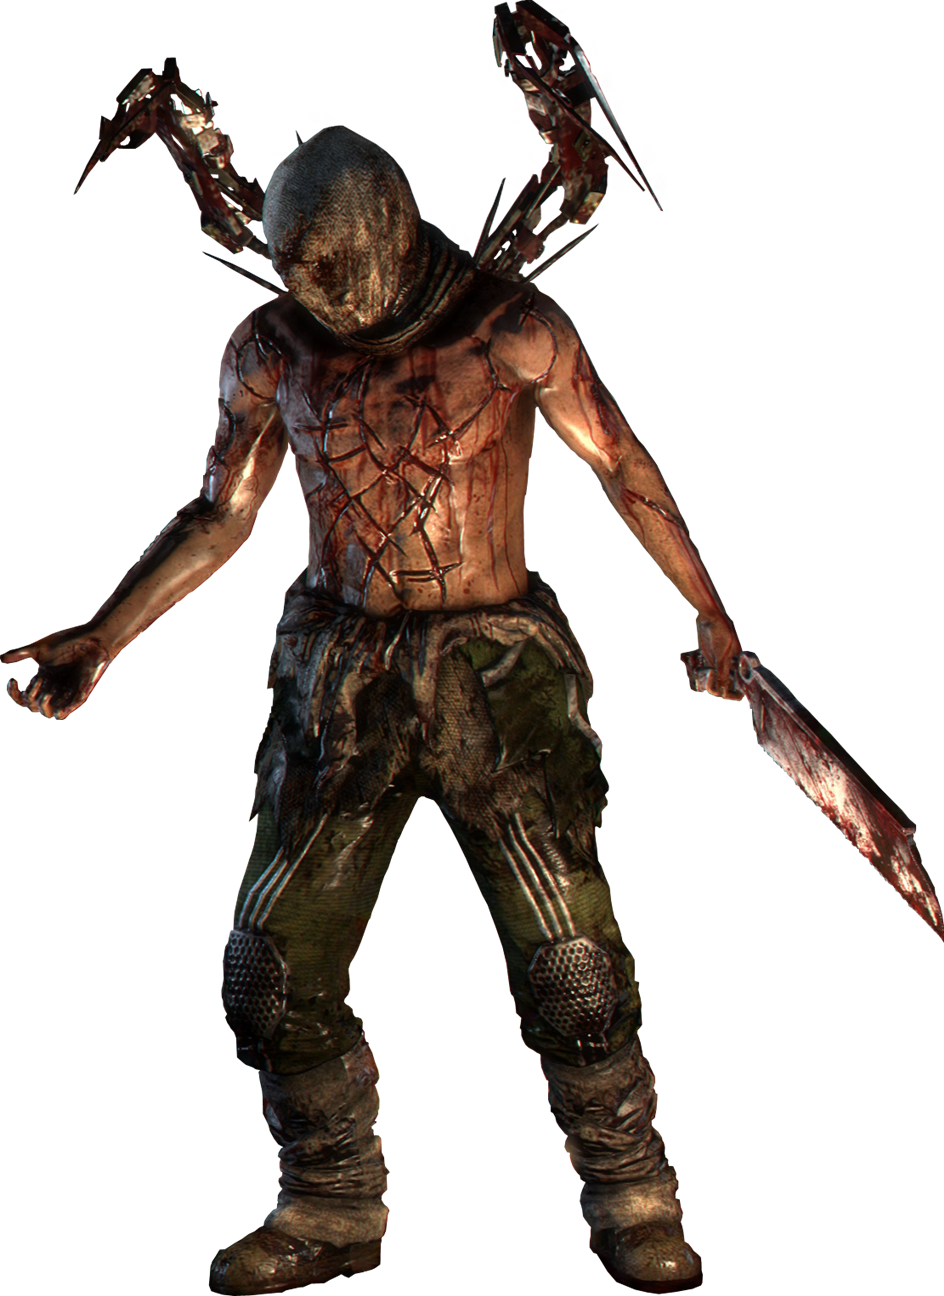 Dead Space Free Download PNG Image